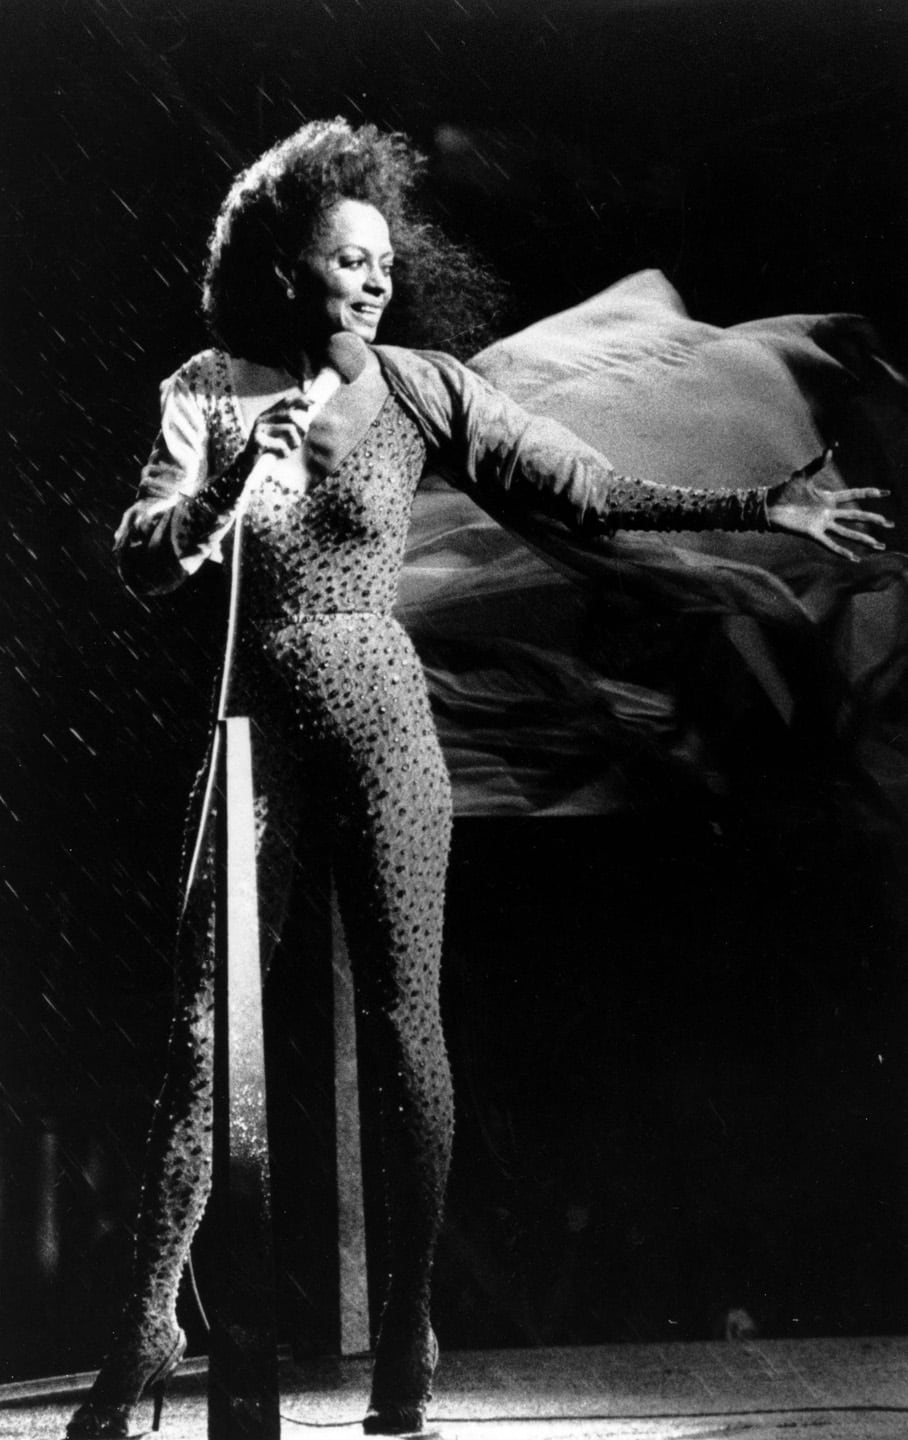 Vintage Style: Get Inspired By This Incredible Diana Ross OutfitsVintage Style: Get Inspired By This Incredible Diana Ross Outfits vintage style Vintage Style: Get Inspired By This Incredible Diana Ross Outfits ross